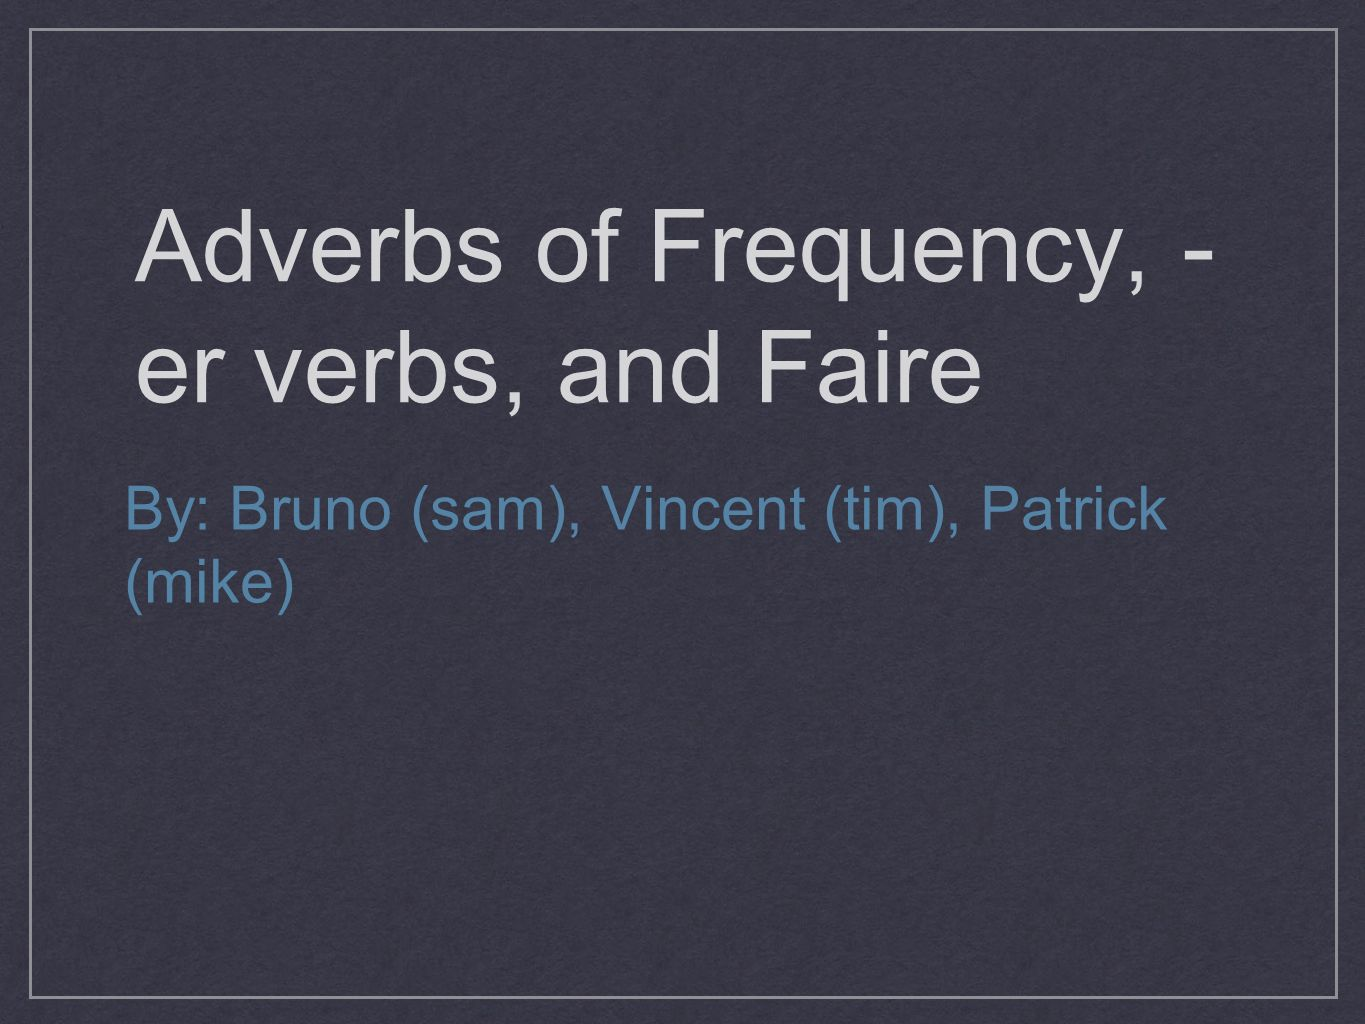 Adverbs of Frequency, - er verbs, and Faire By: Bruno (sam), Vincent (tim), Patrick (mike)